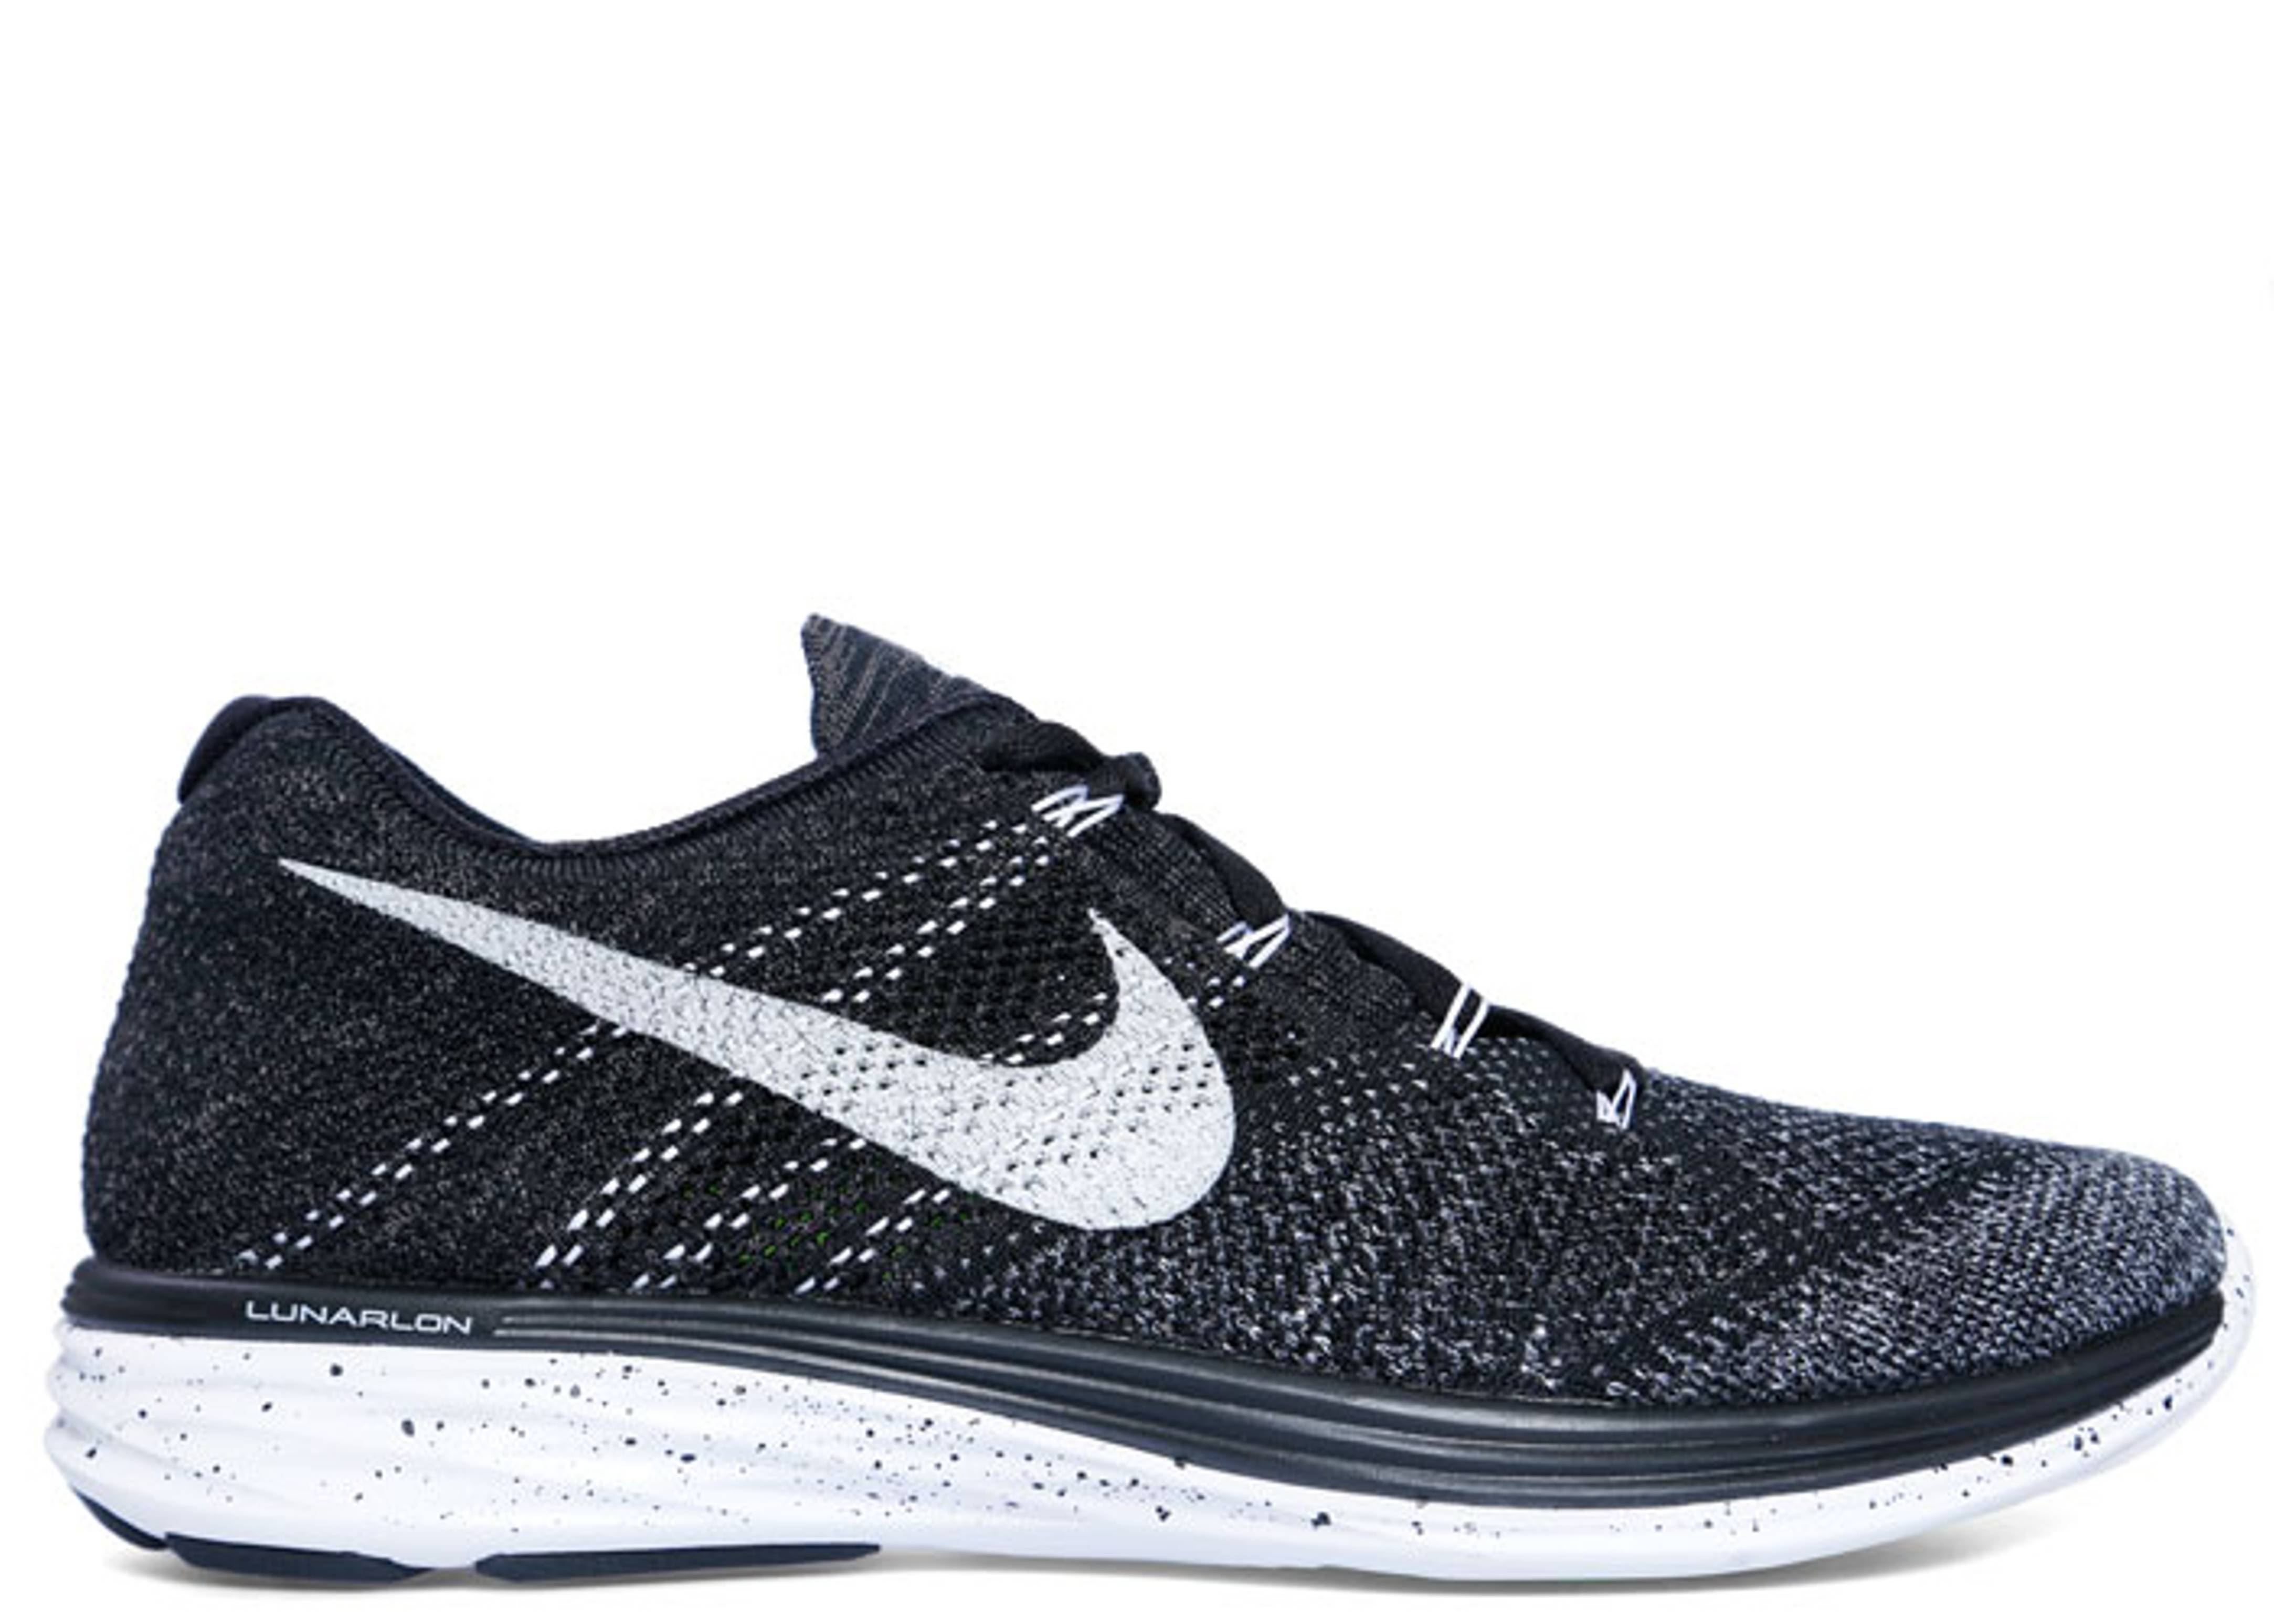 reputable site 26839 9899e nike. flyknit lunar3